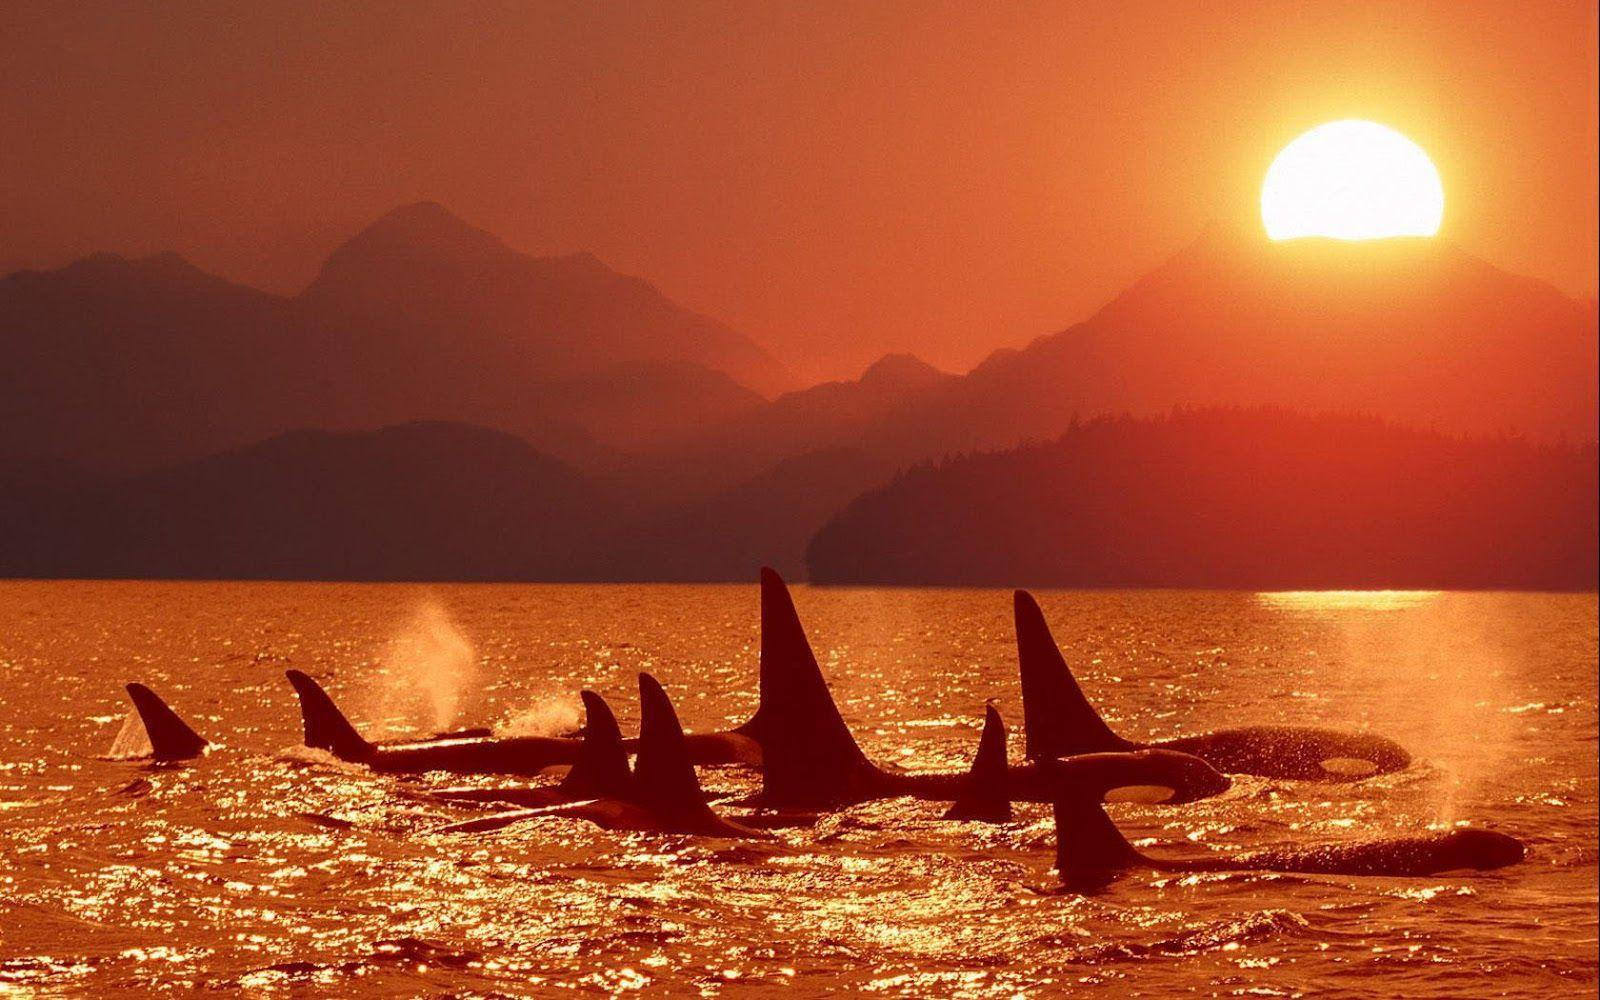 Killer Whales Wallpapers Image & Pictures